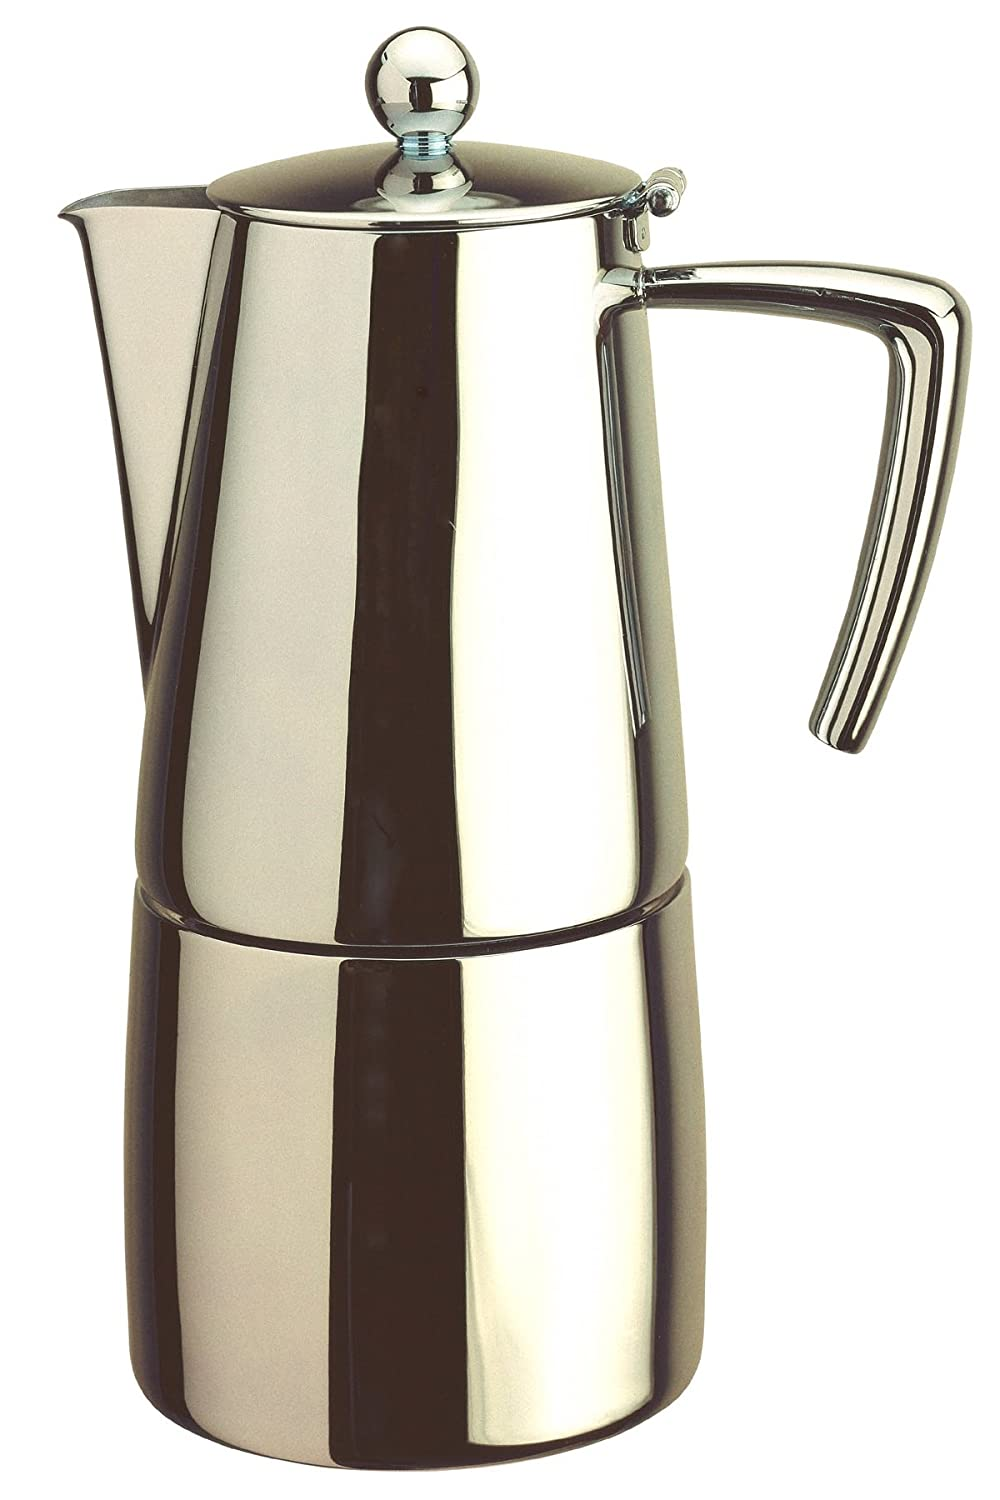 Stainless steel stovetop espresso maker 10 cup - Art Deco Stovetop Stainless Steel Espresso Coffee Maker 10 Cup Amazon Co Uk Kitchen Home